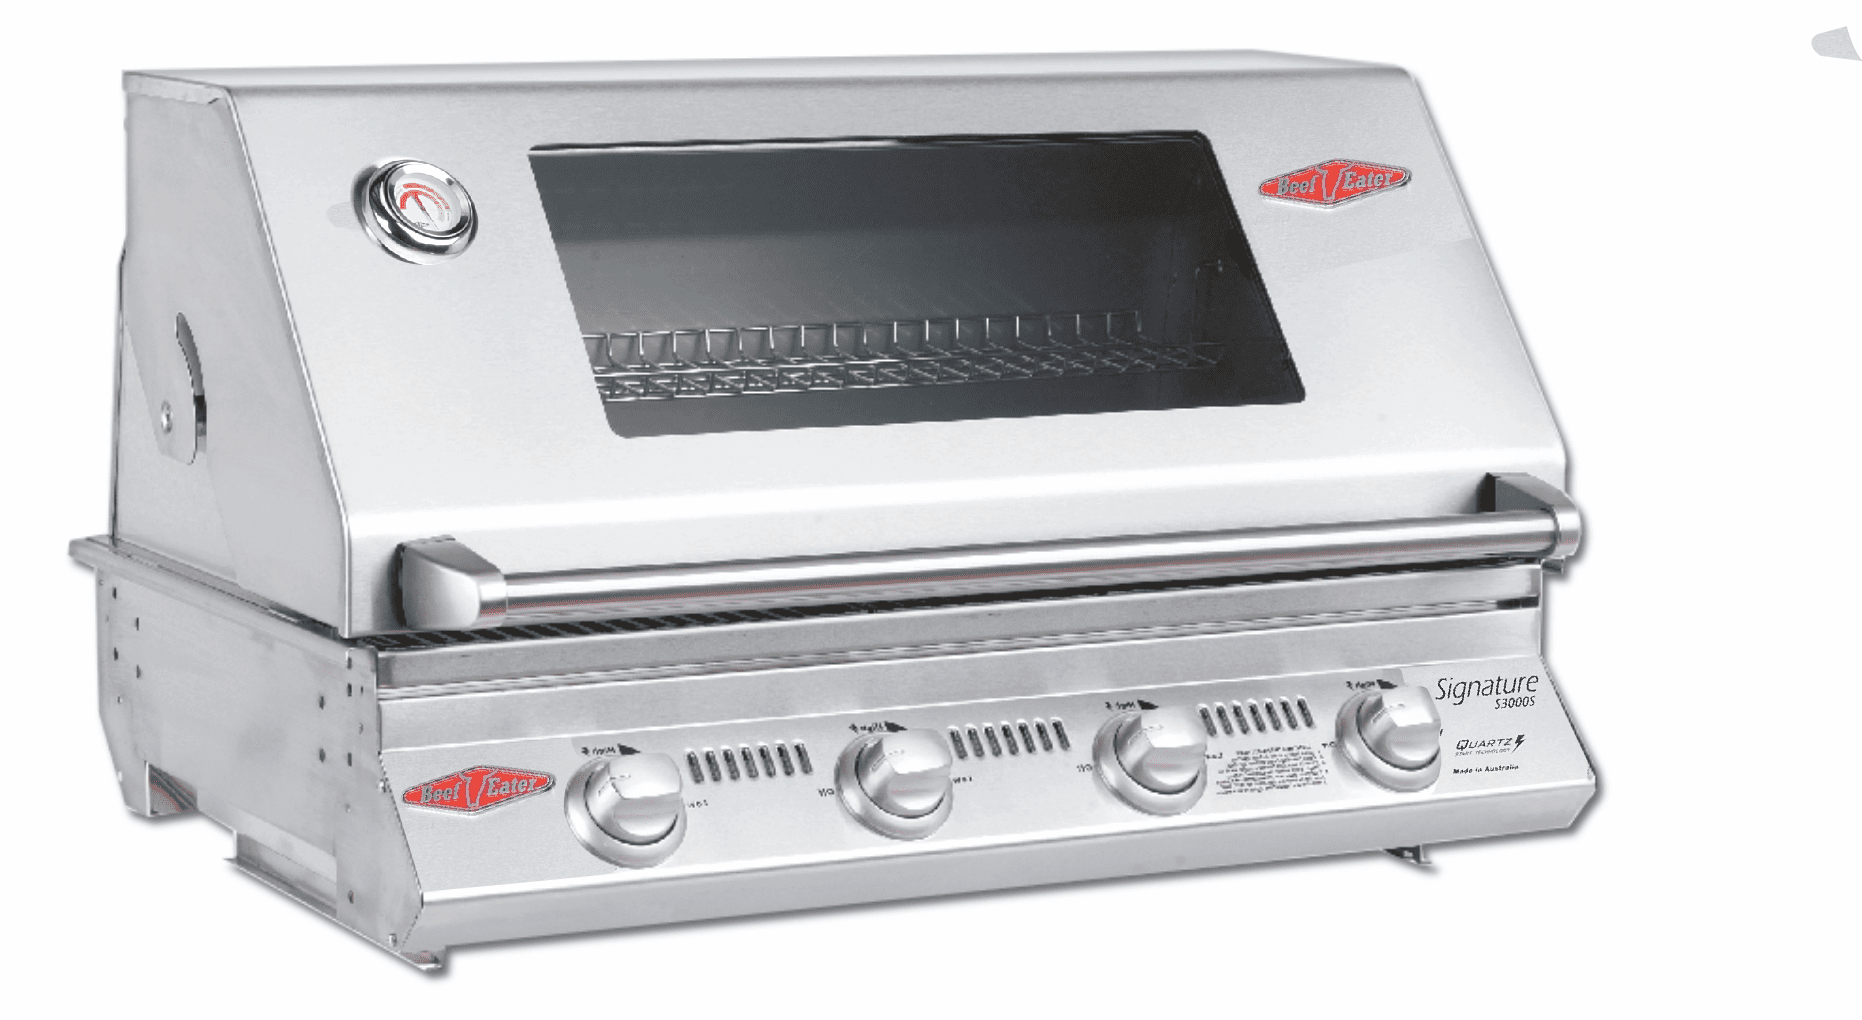 Beefeater 12840s Signature S3000 Premium 4 burner Built in grill